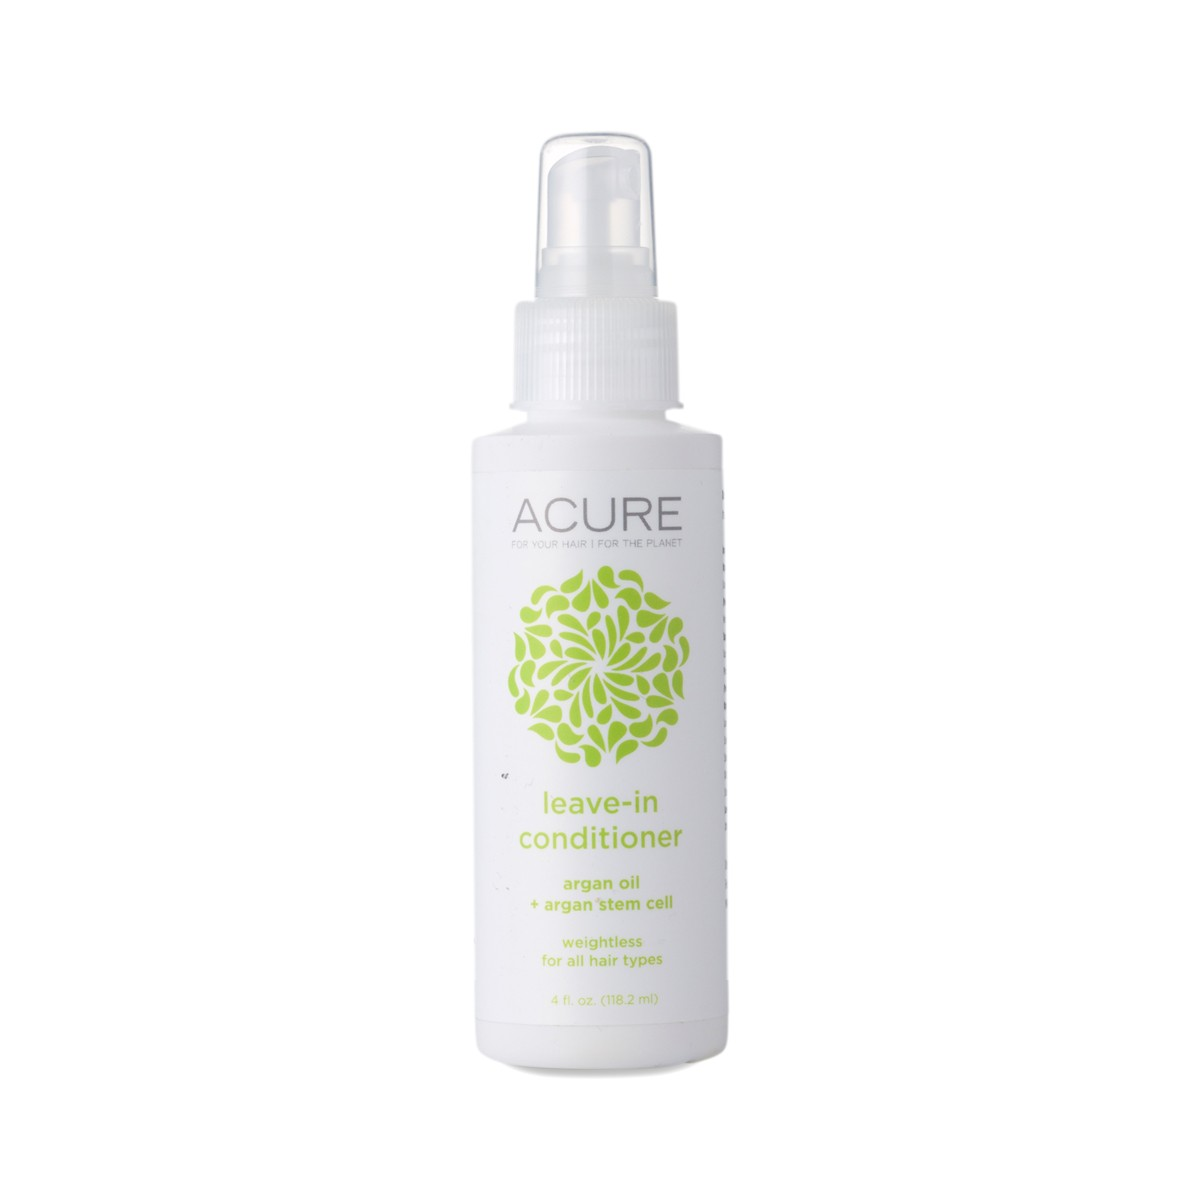 Argan Stem Cell Leave-In Conditioner By Acure Organics